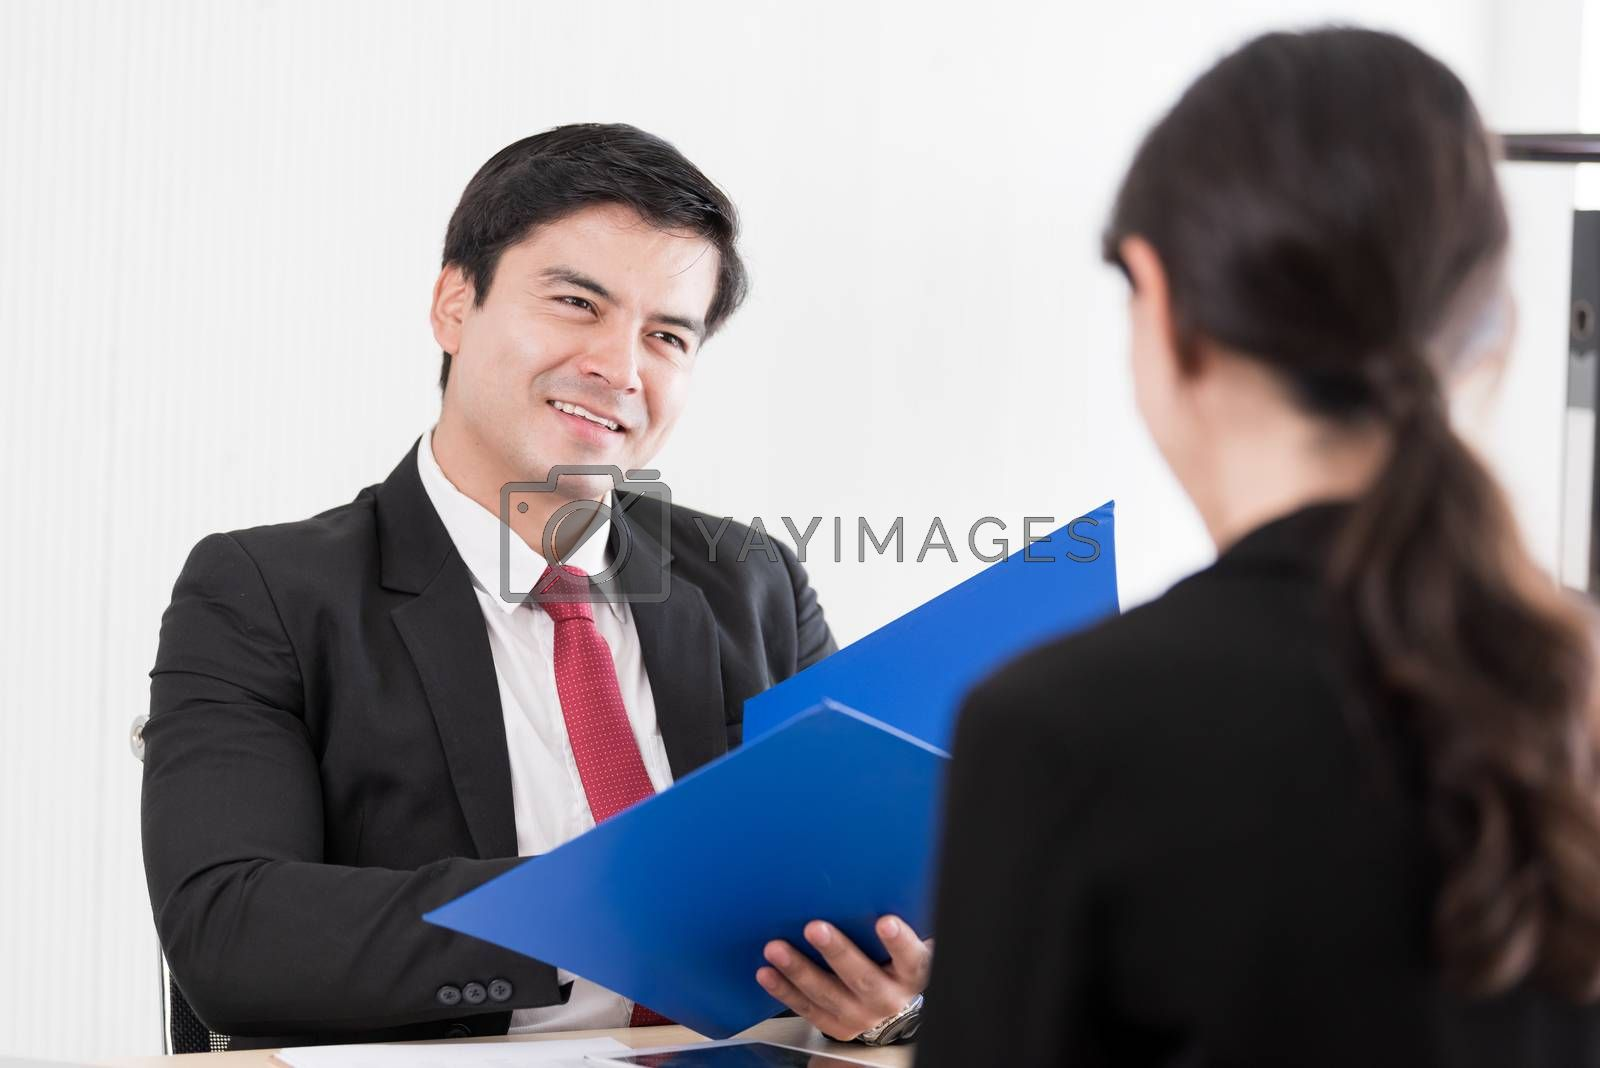 A businessman listens and talking to candidate woman answers for by animagesdesign